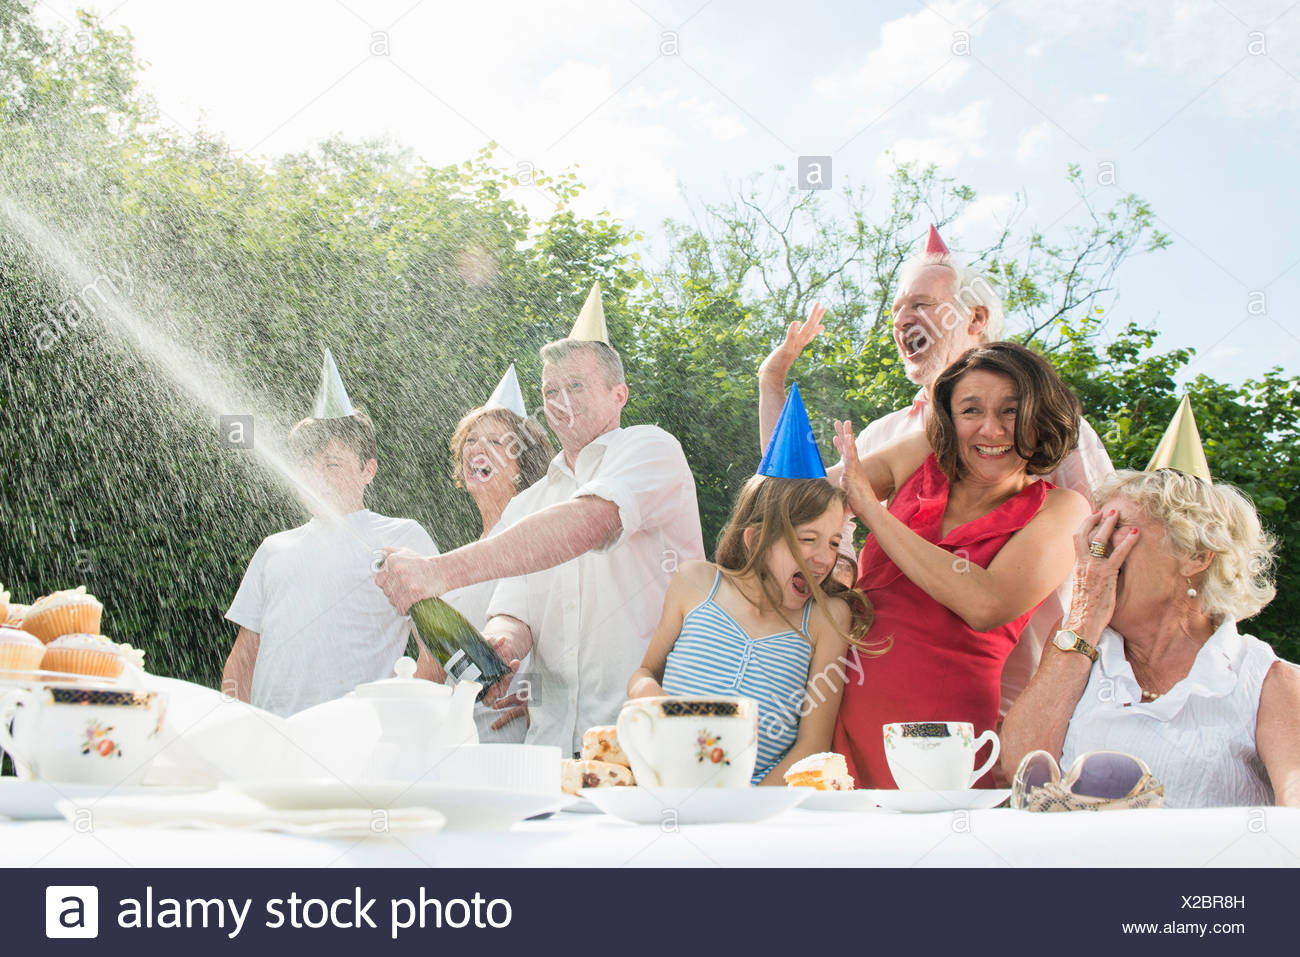 Family celebrating birthday, man opening champagne - Stock Image